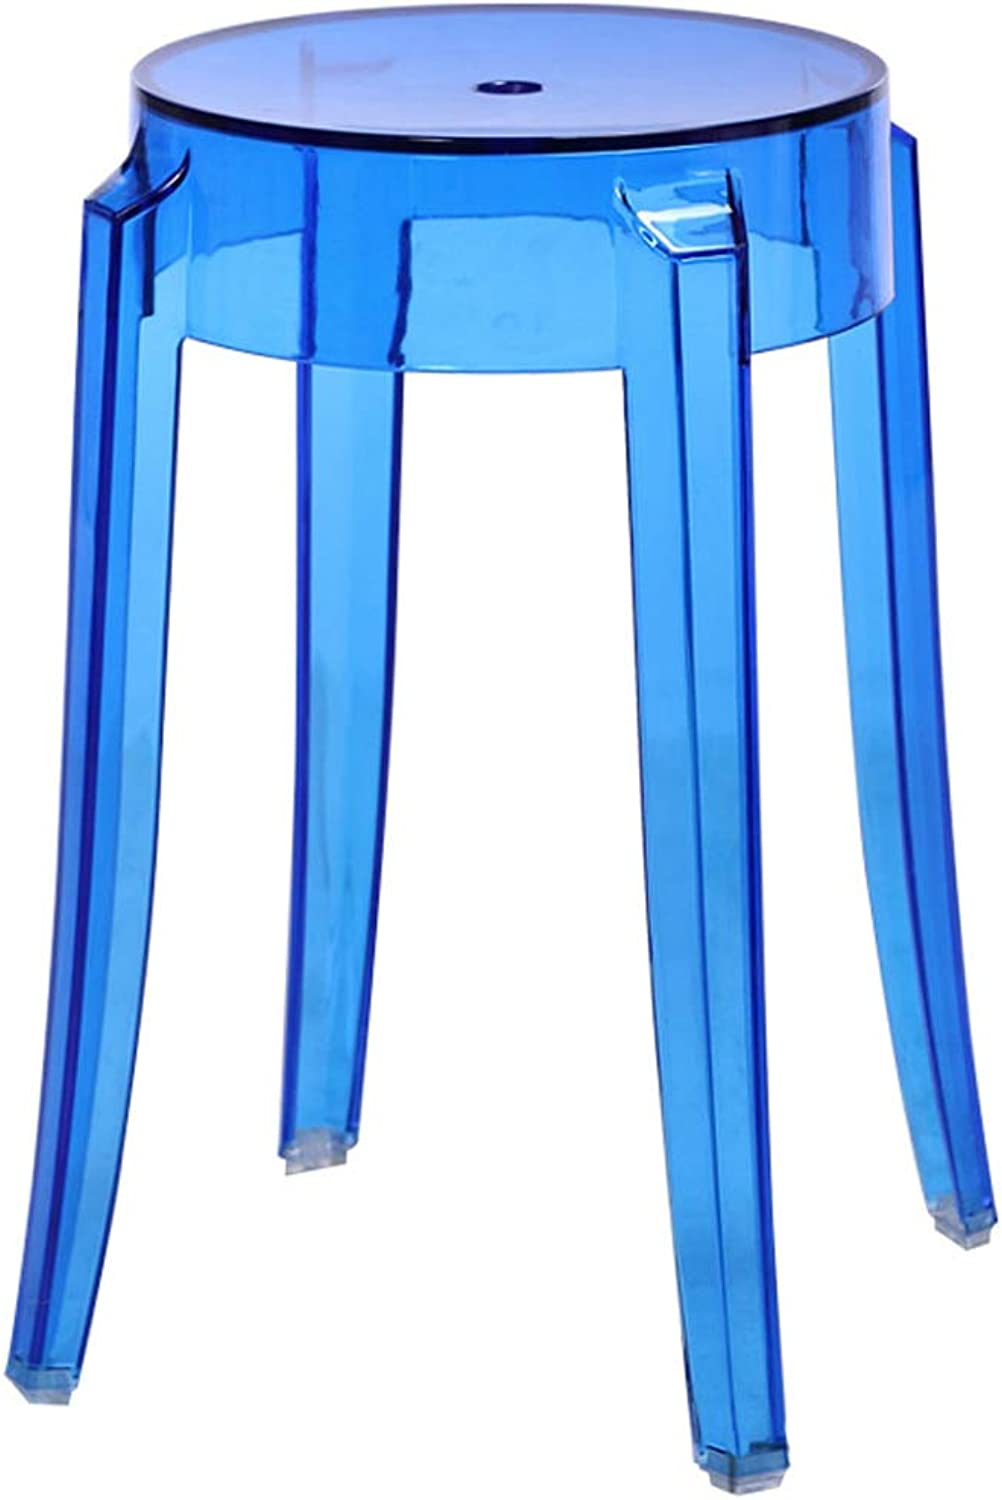 LRW Plastic Stools, Thickened Acrylic Chairs, Stools, Chairs, High Stools, High Stools, Transparent bluee.